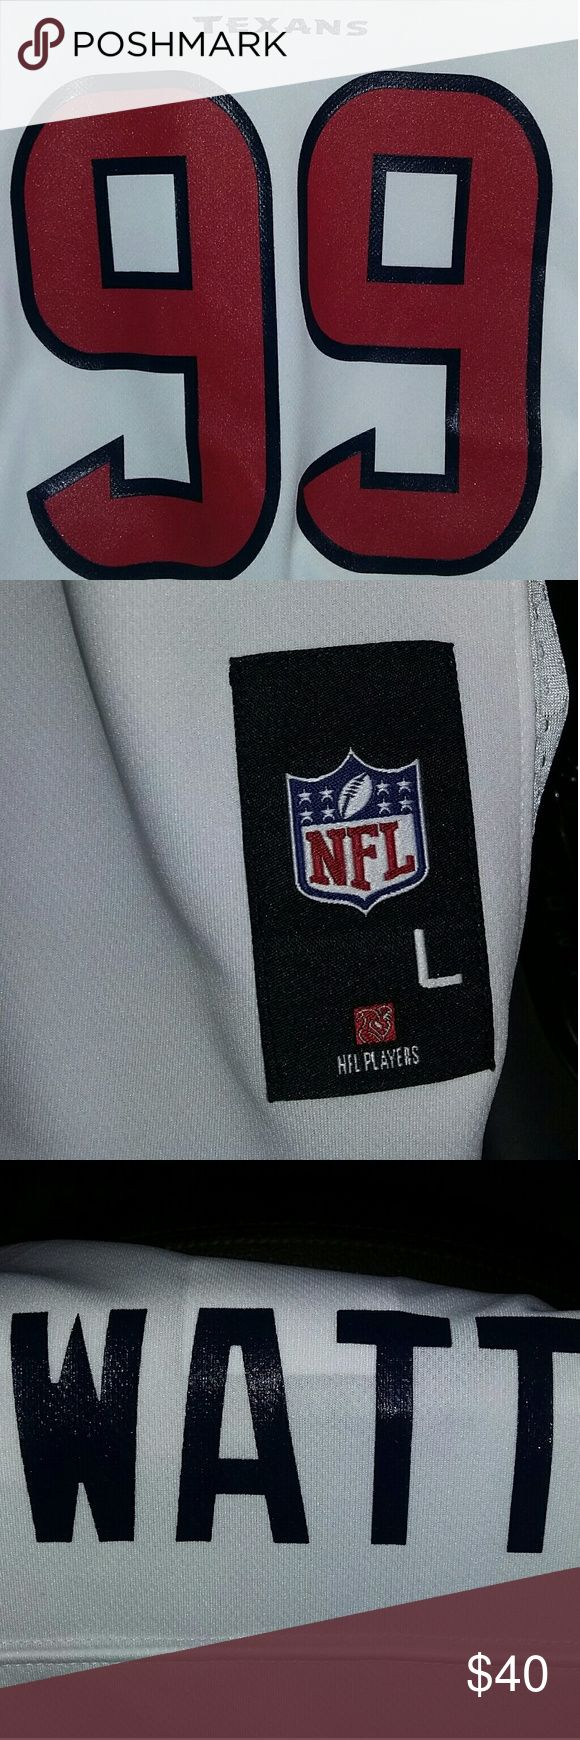 New HOUSTON TEXAS NFL JERSEY LARGE NWT. WHITE red blue letters.  Player Watt #99 Shirts & Tops Tees - Short Sleeve